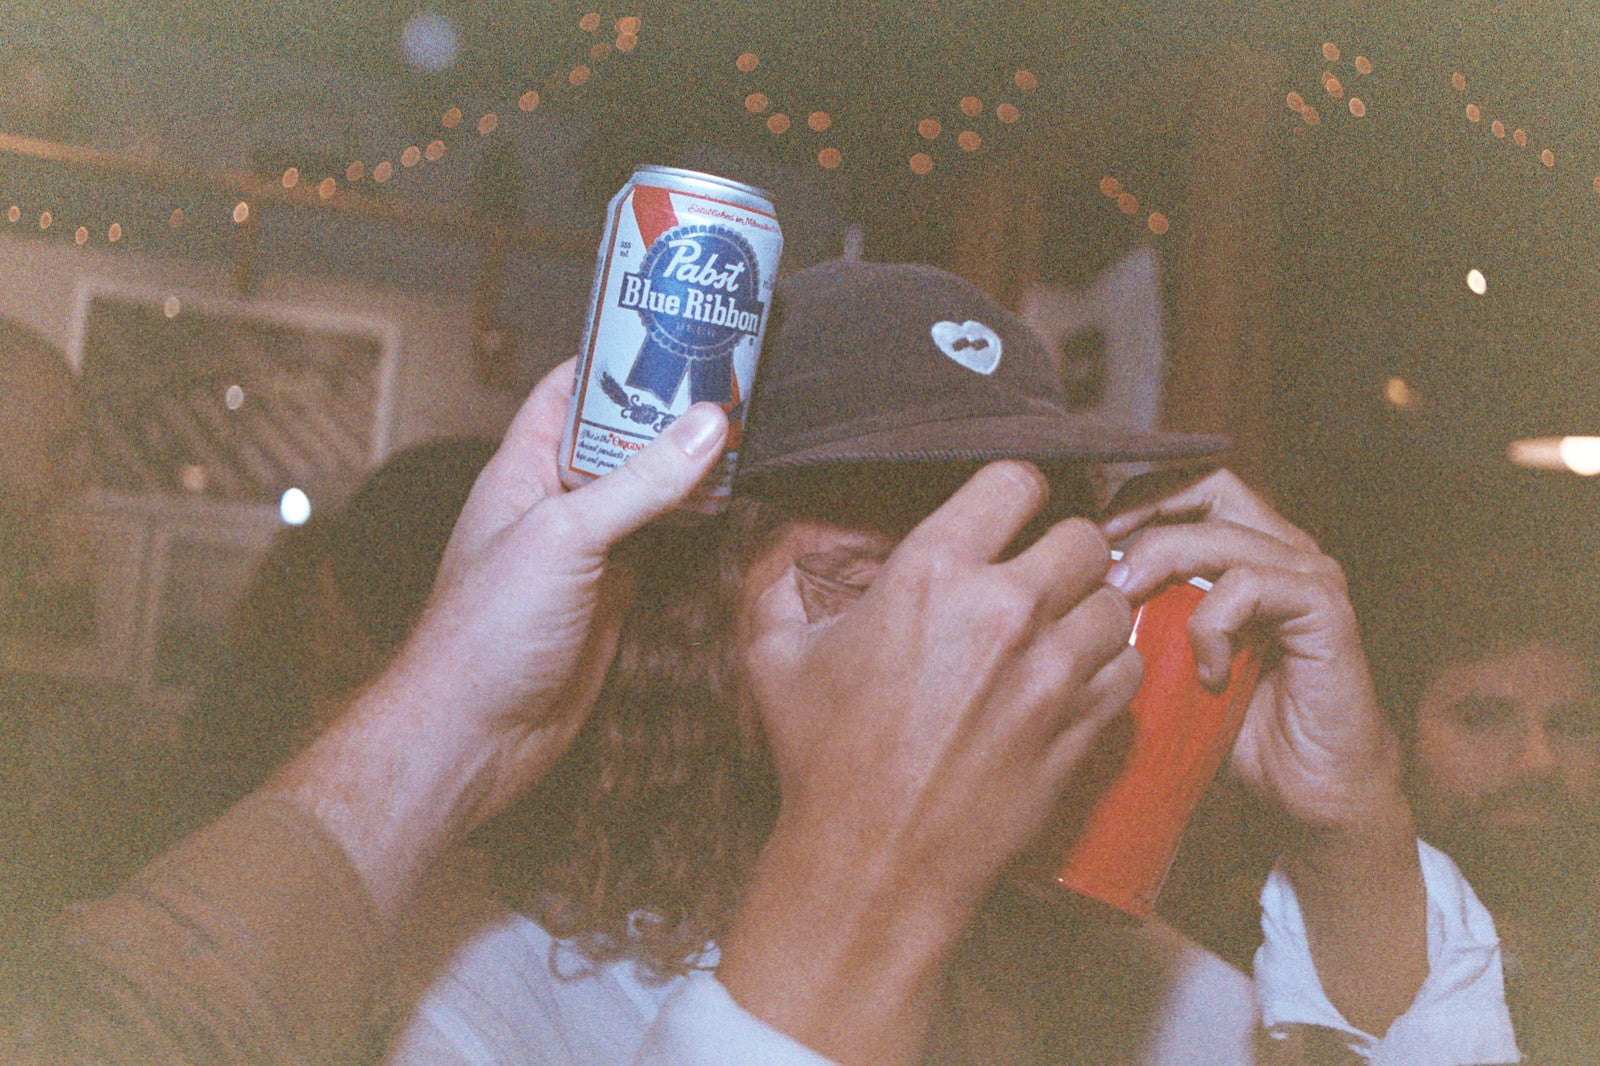 Tom Goad of Banks Journal hiding behind a can of beer at Annex Surf Supply